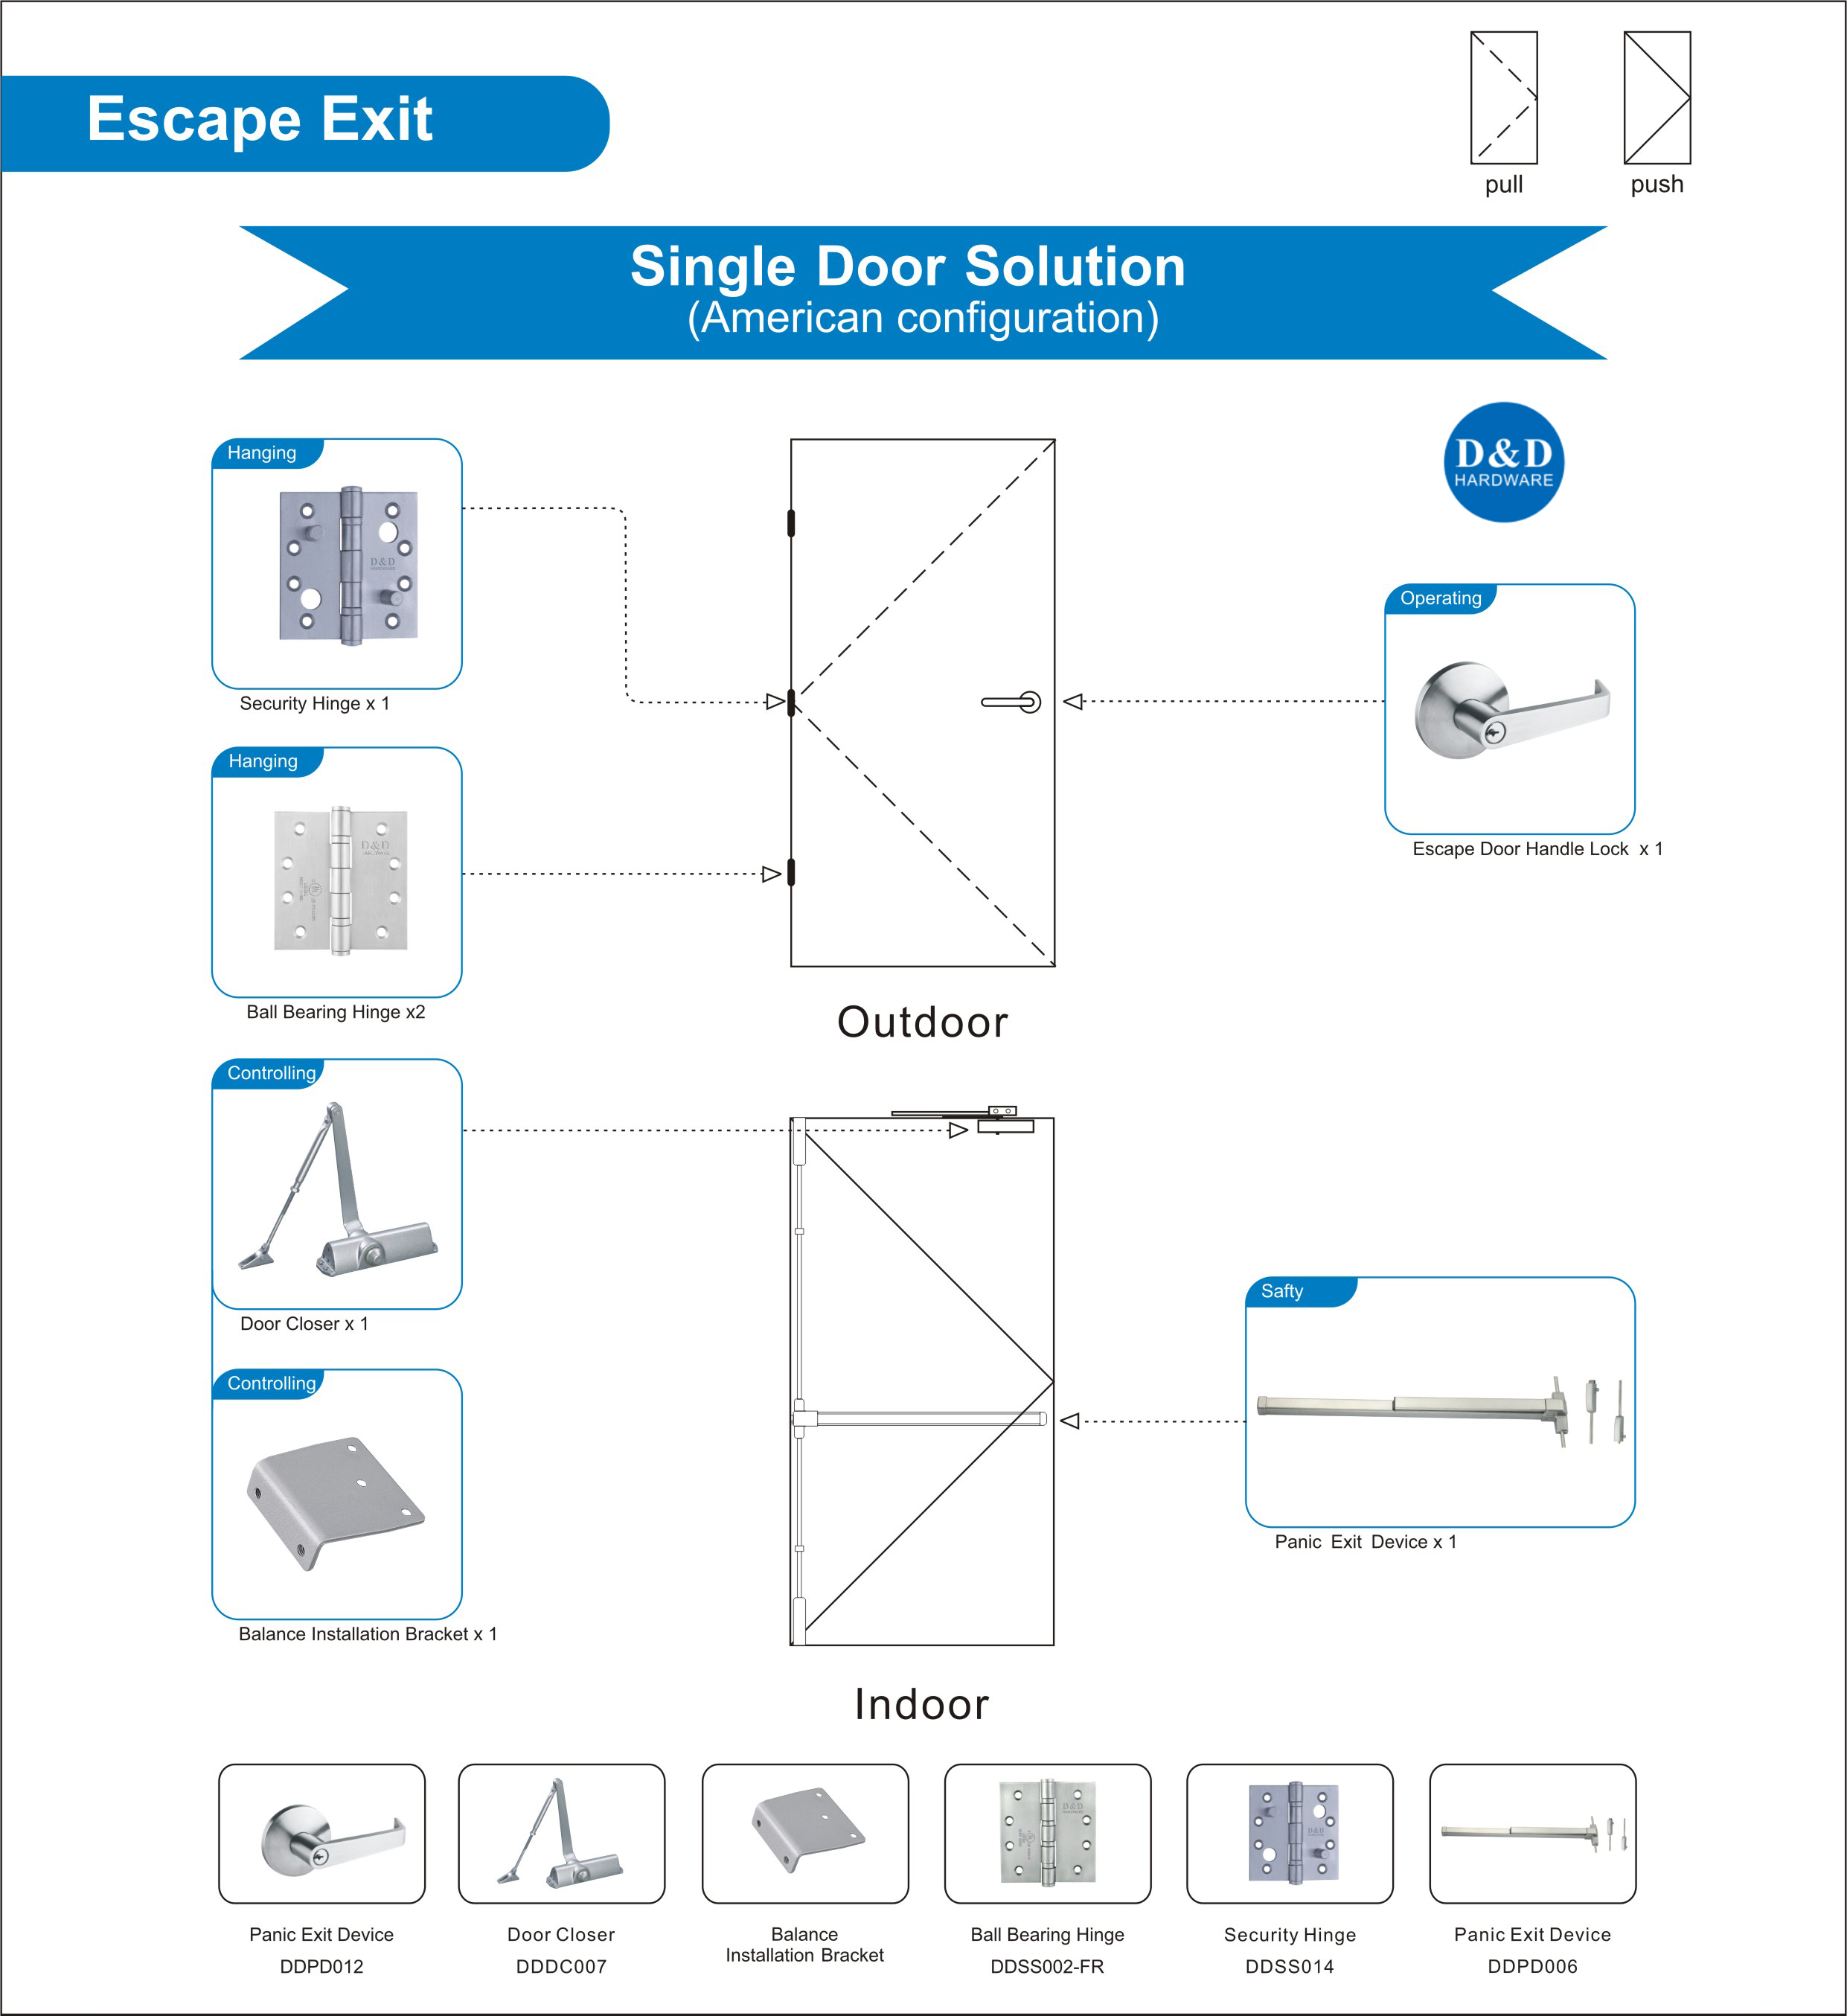 Architecture Hardware Solution for Escape Exit Single Door